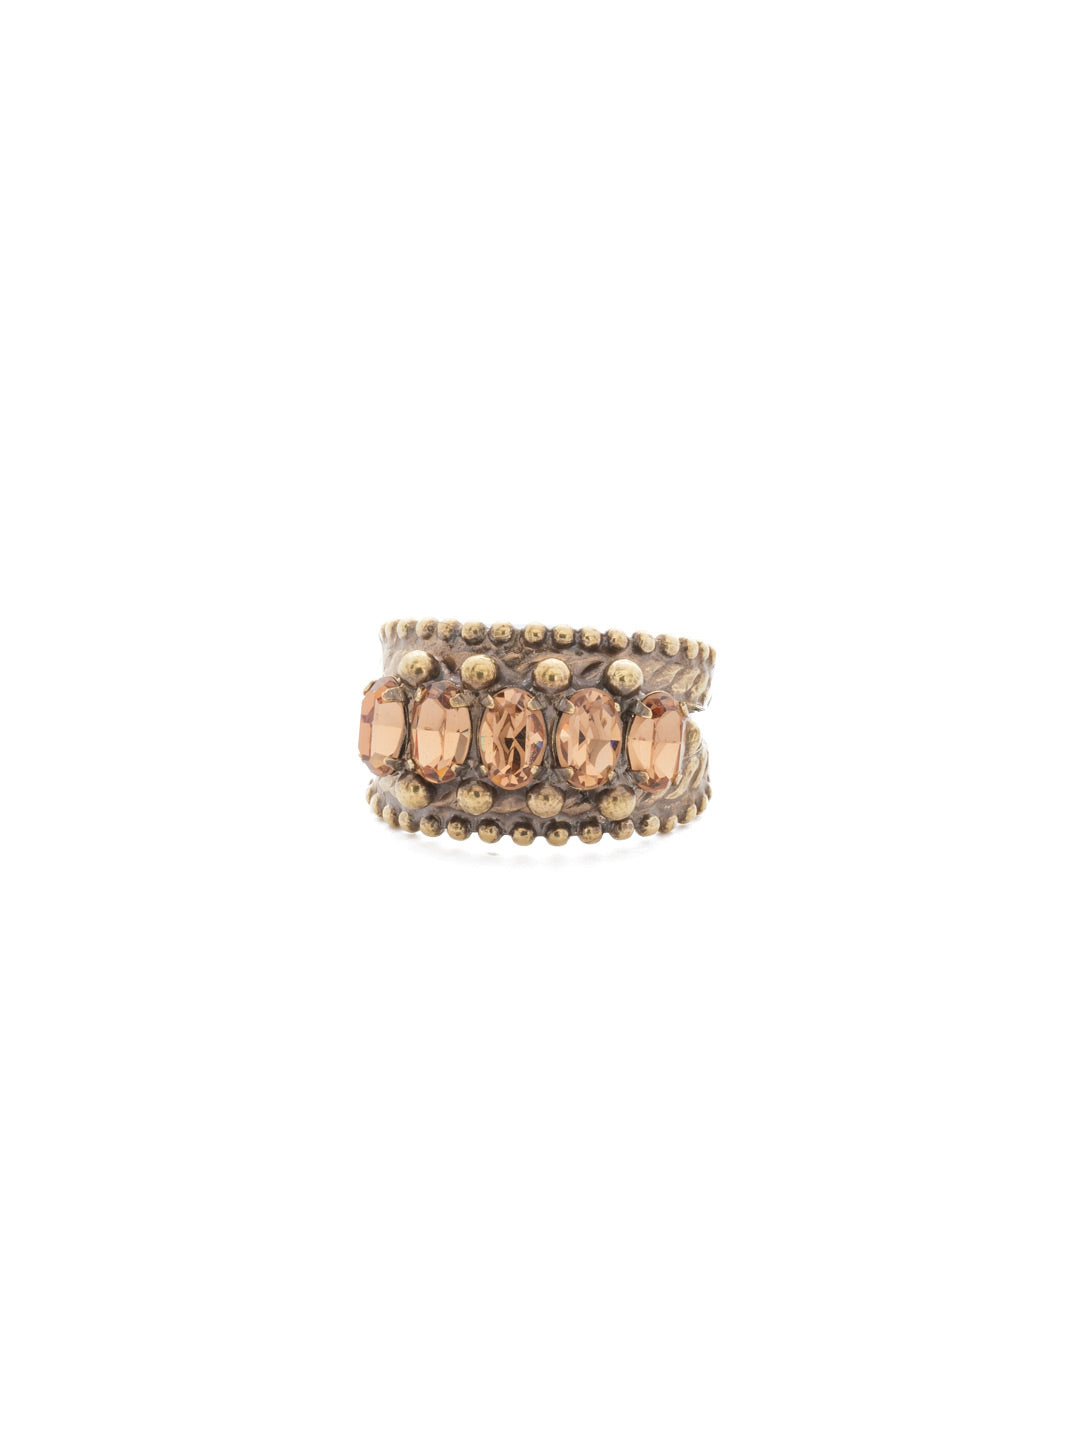 Crown Jewel Cocktail Ring - RDH2AGNT